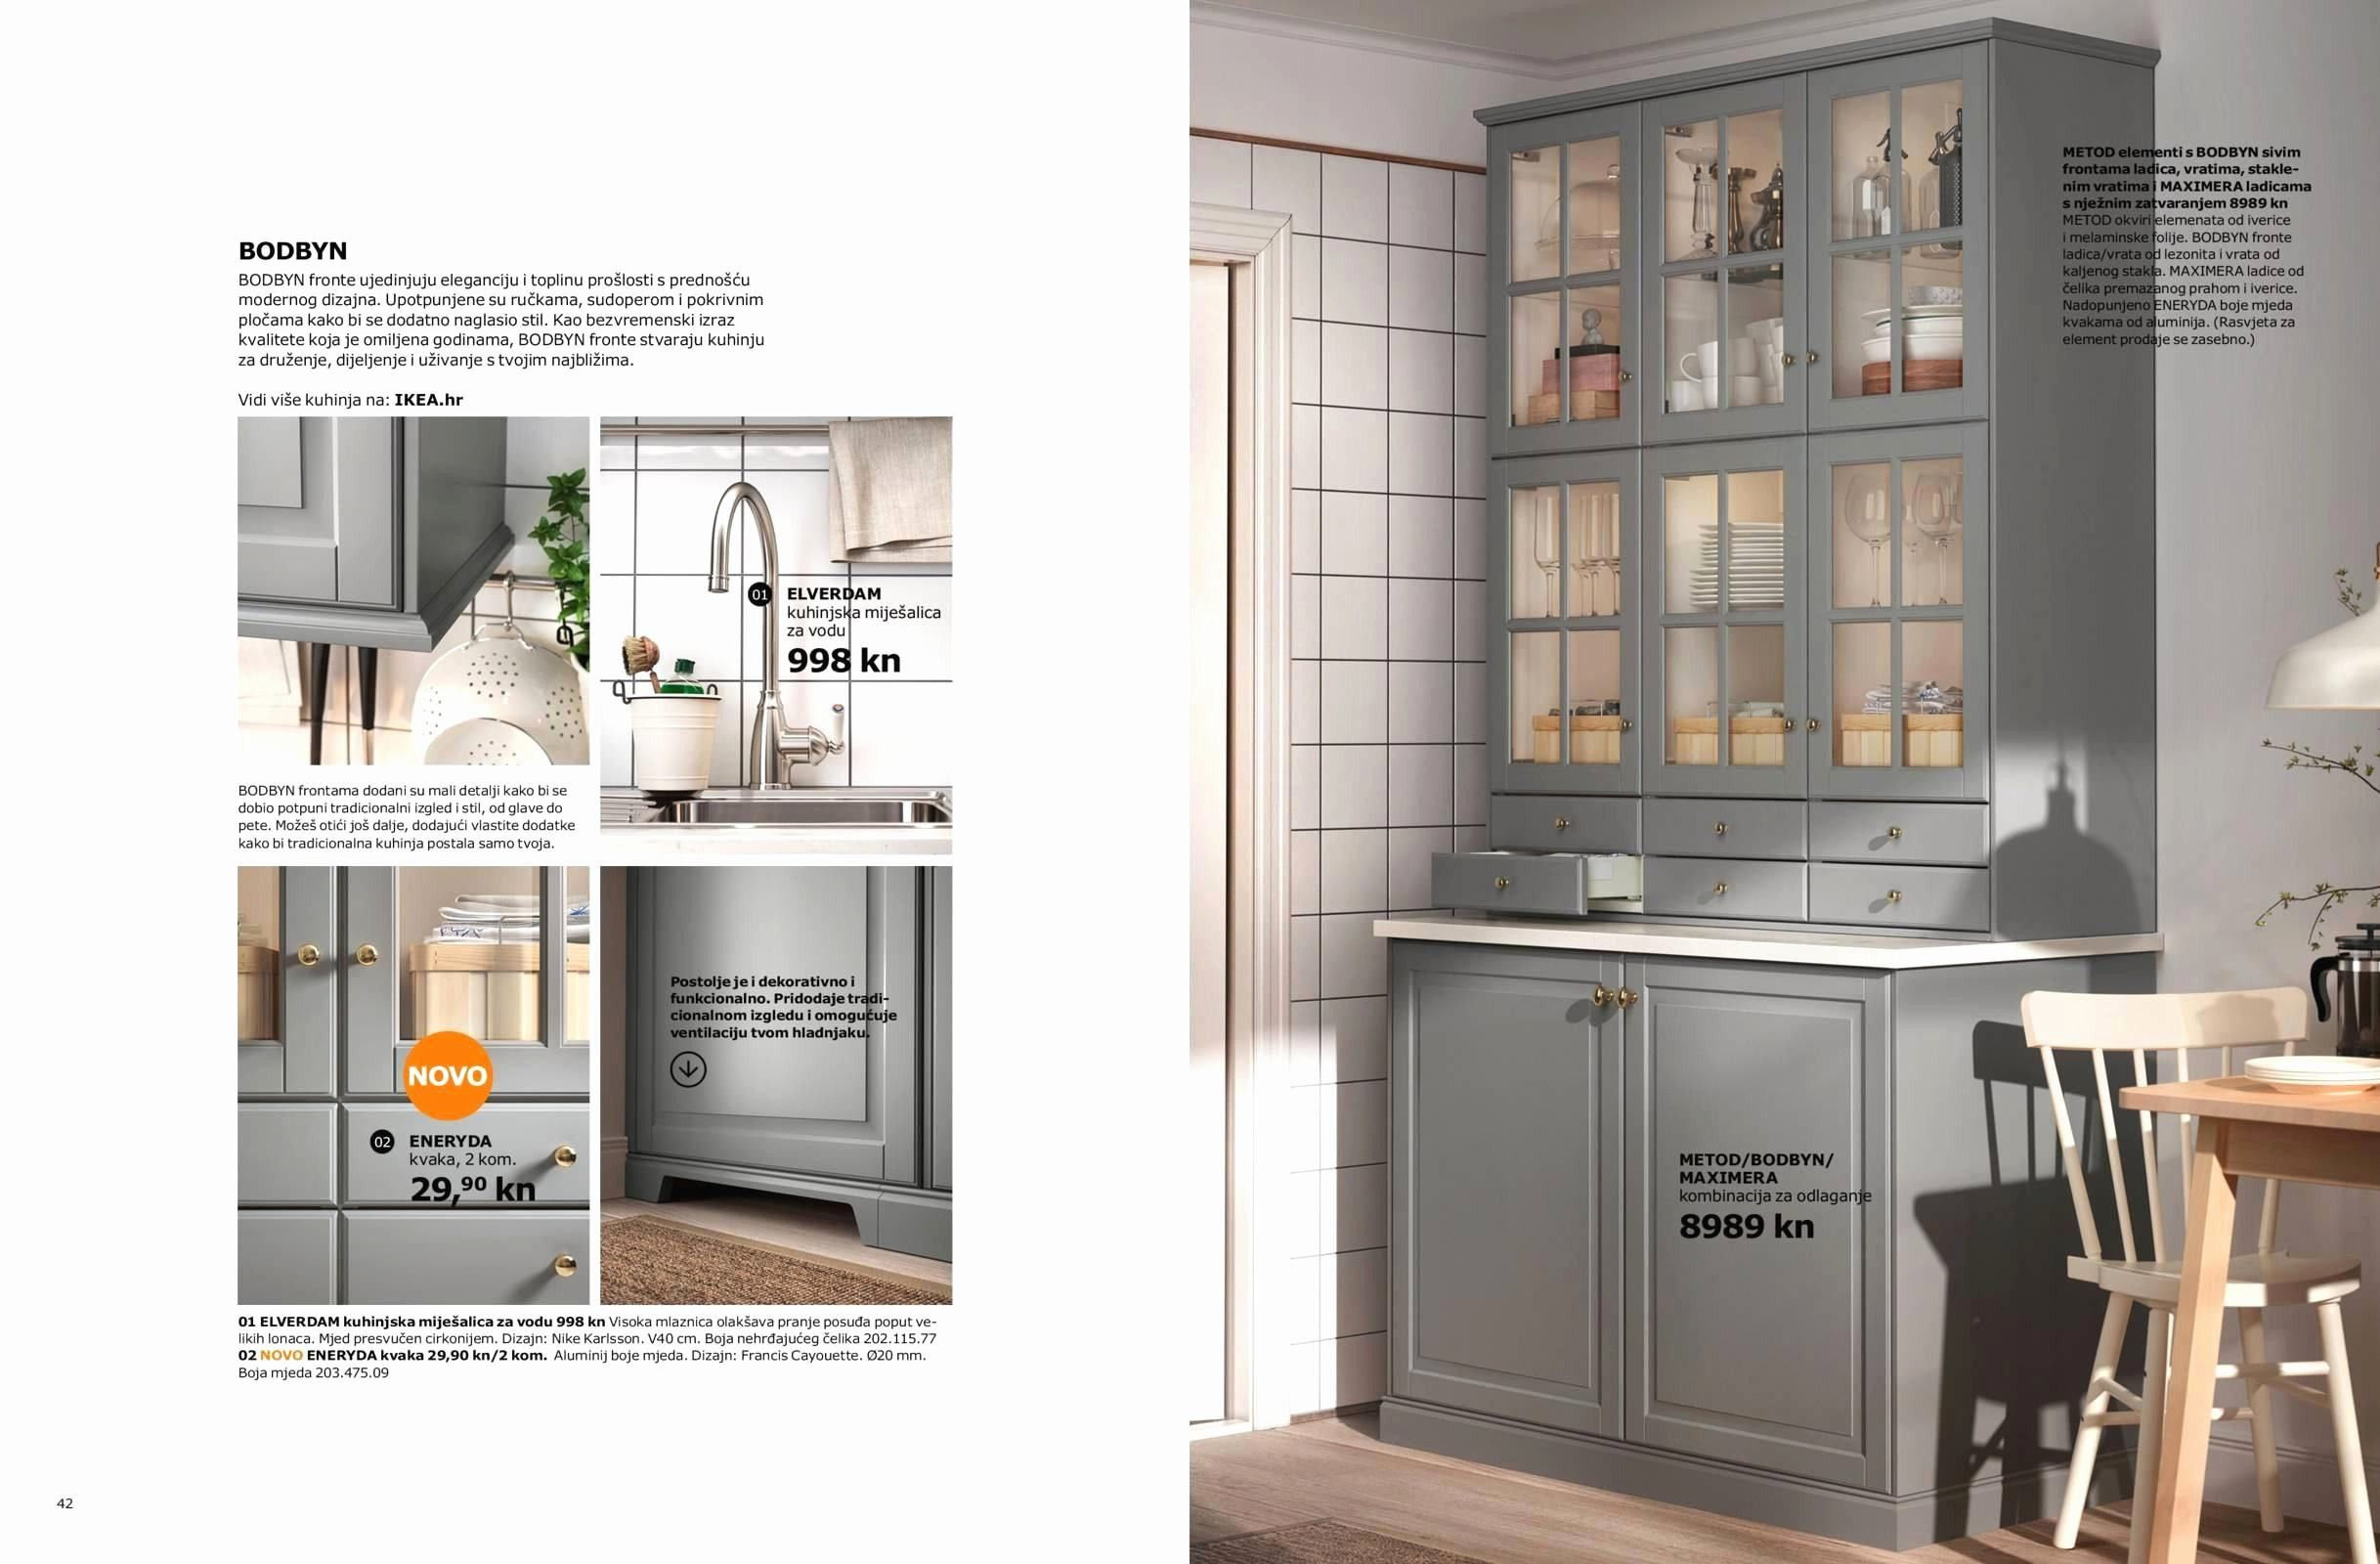 Beautiful Stainless Steel Kitchen Ideas For You Stainless Steel Is A Huge Selection Too Kitchen Base Cabinets Kitchen Cabinet Storage Ikea Kitchen Cabinets